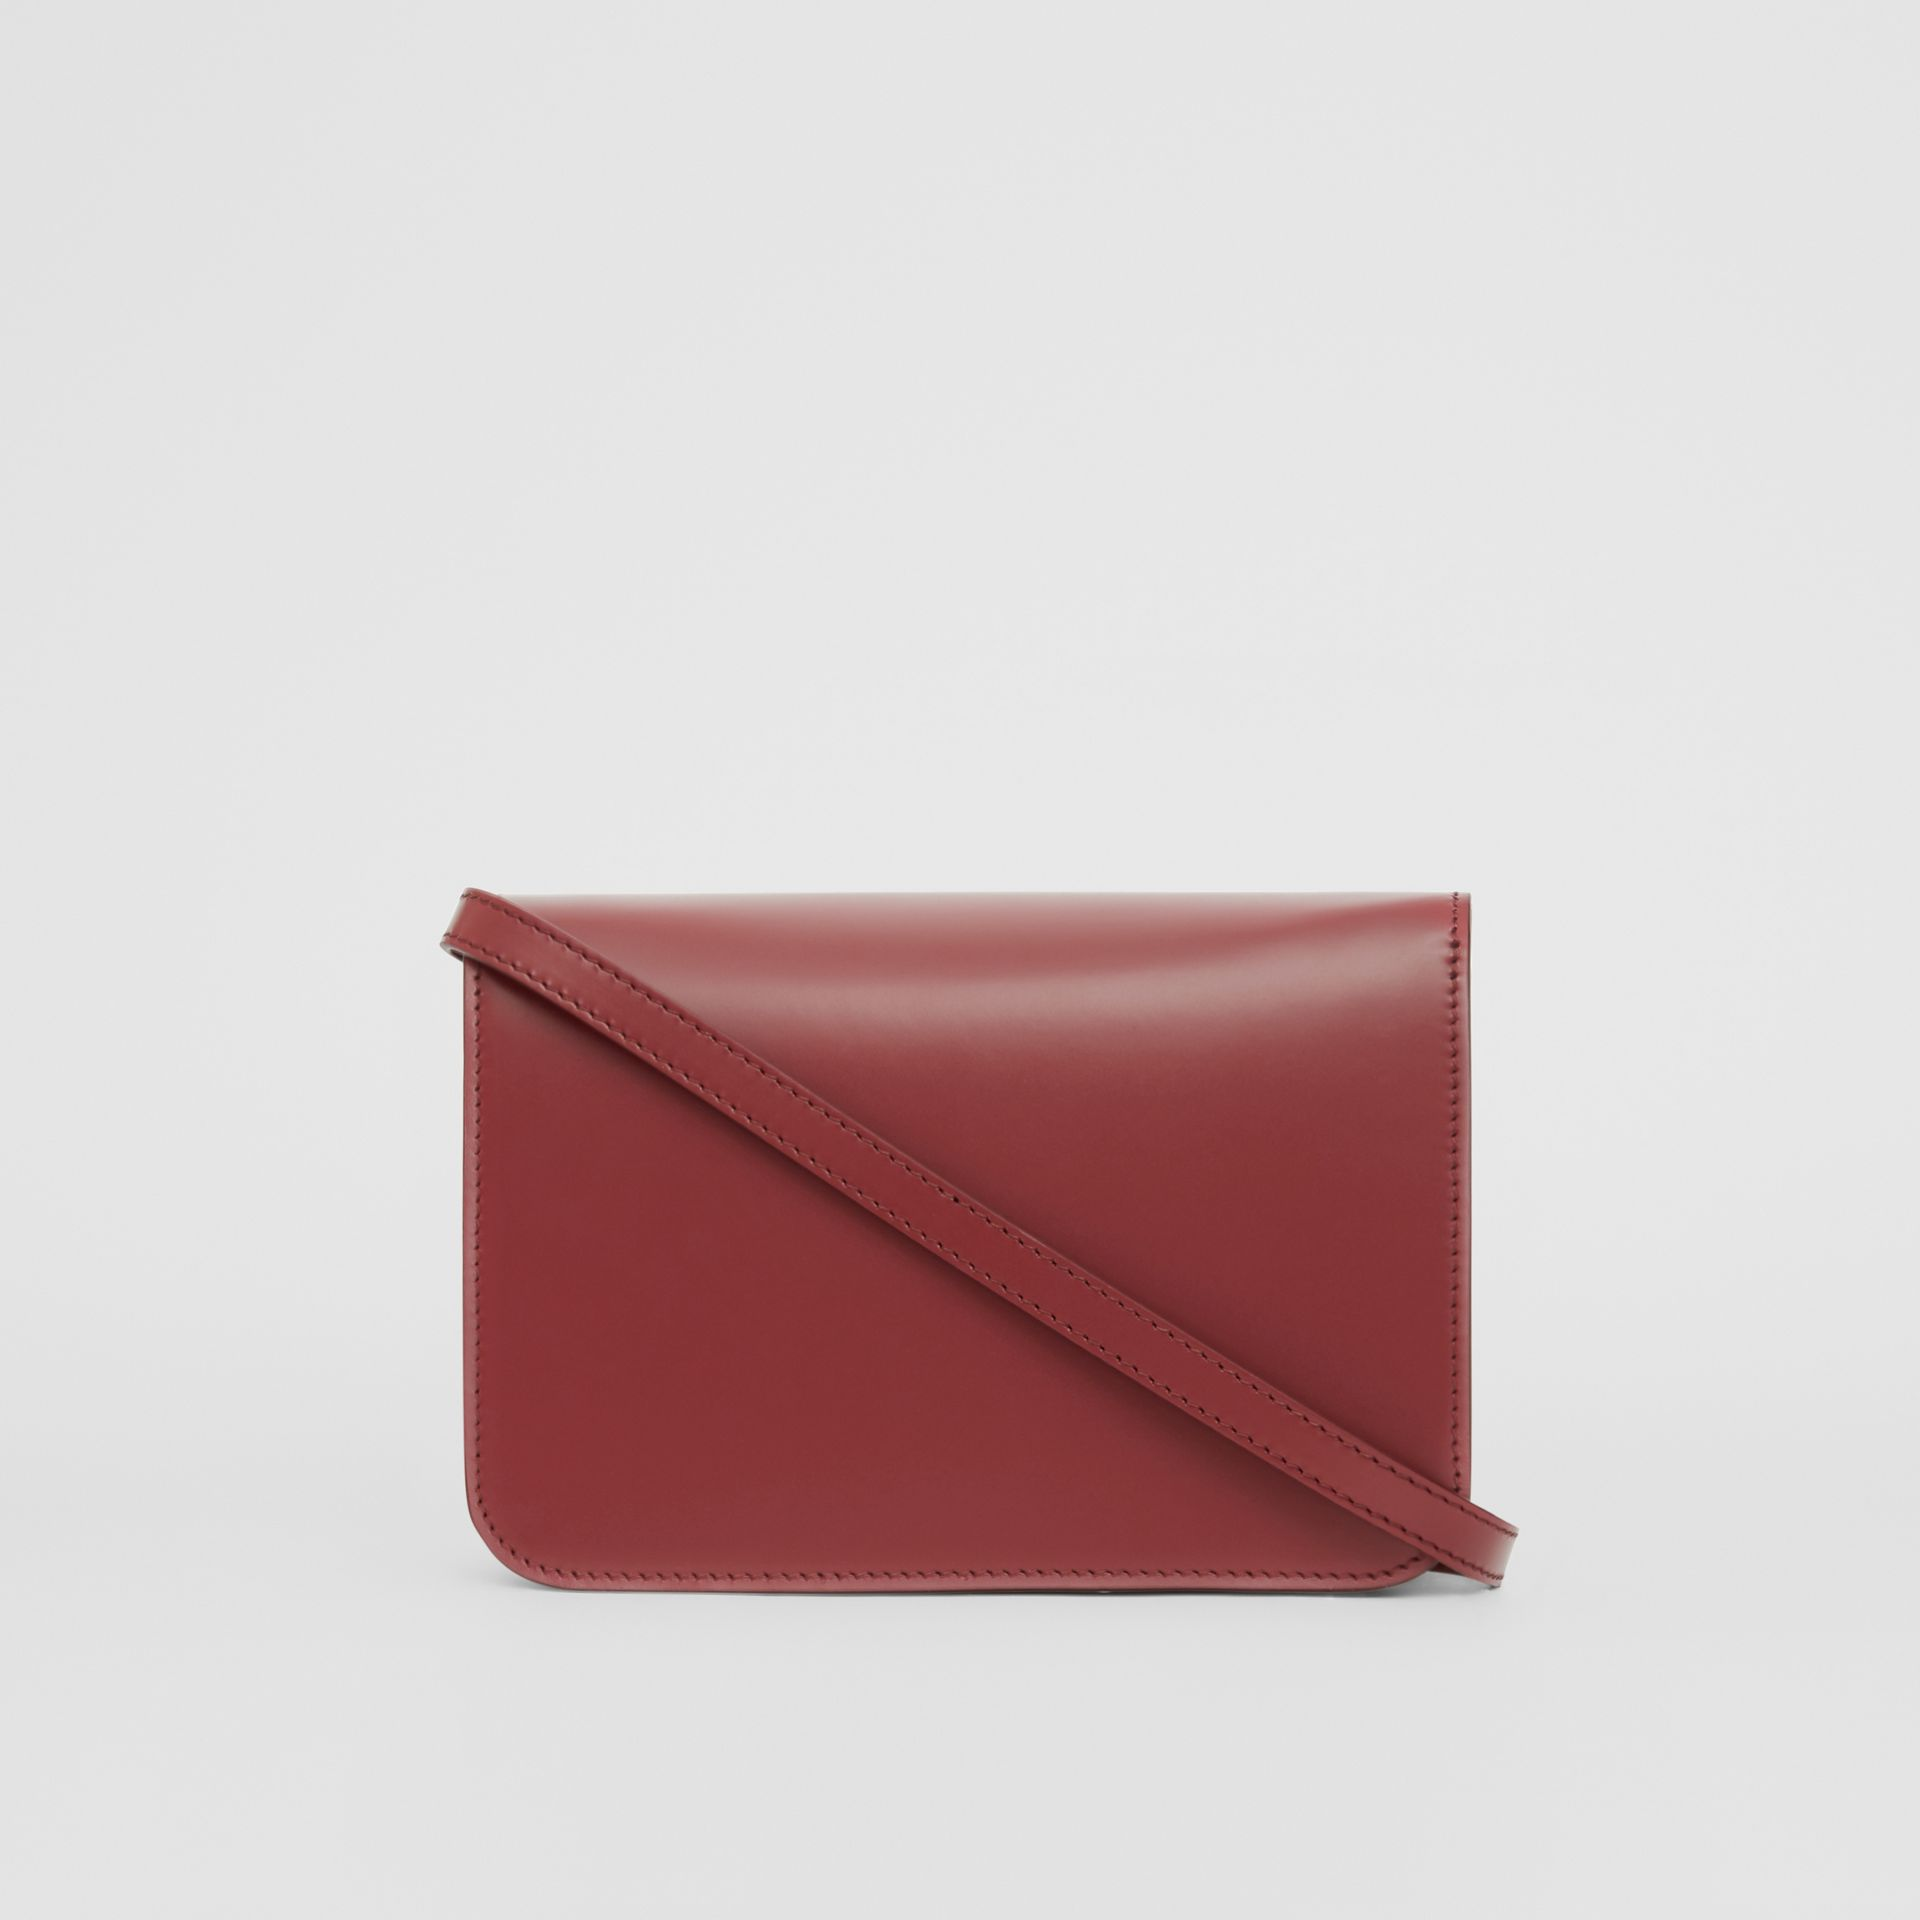 Small Leather TB Bag in Crimson - Women | Burberry - gallery image 7